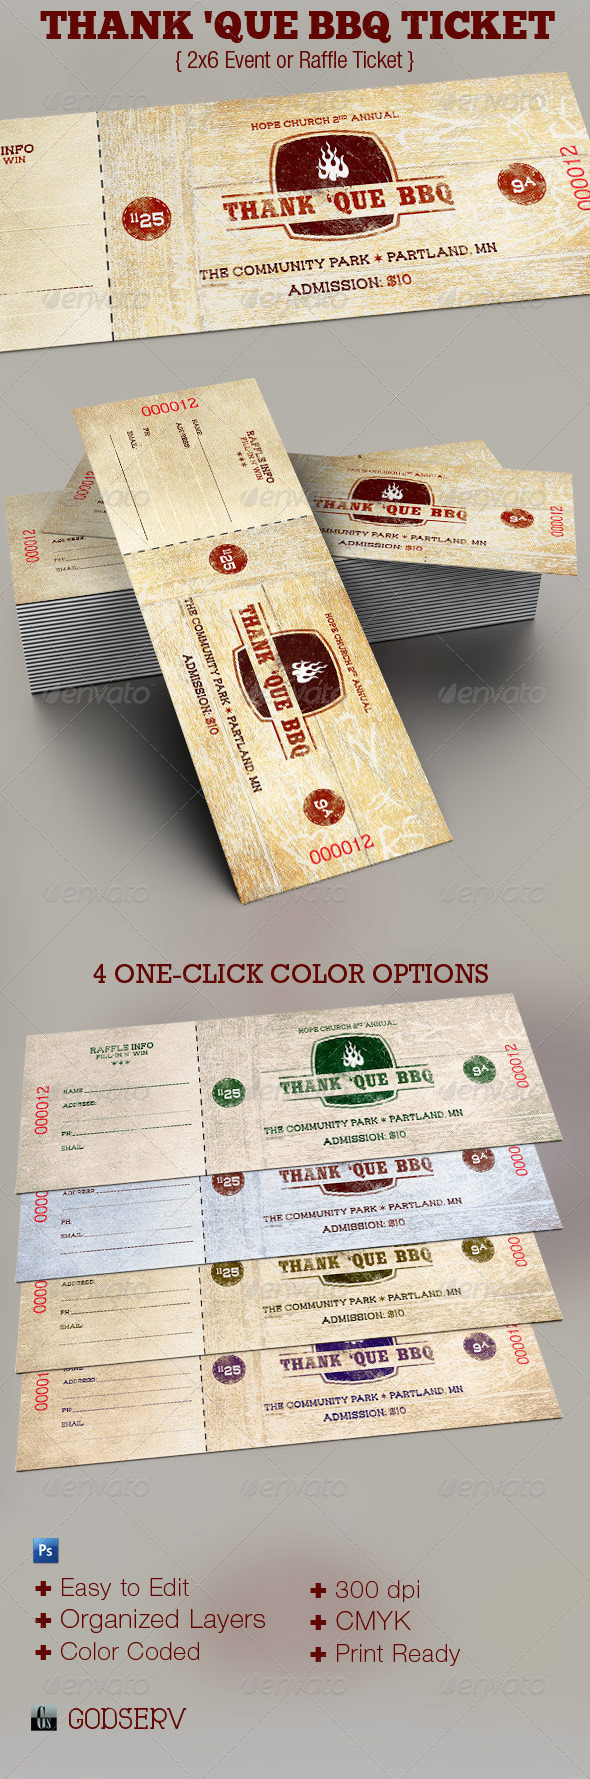 thank que western bbq charity ticket template on behance